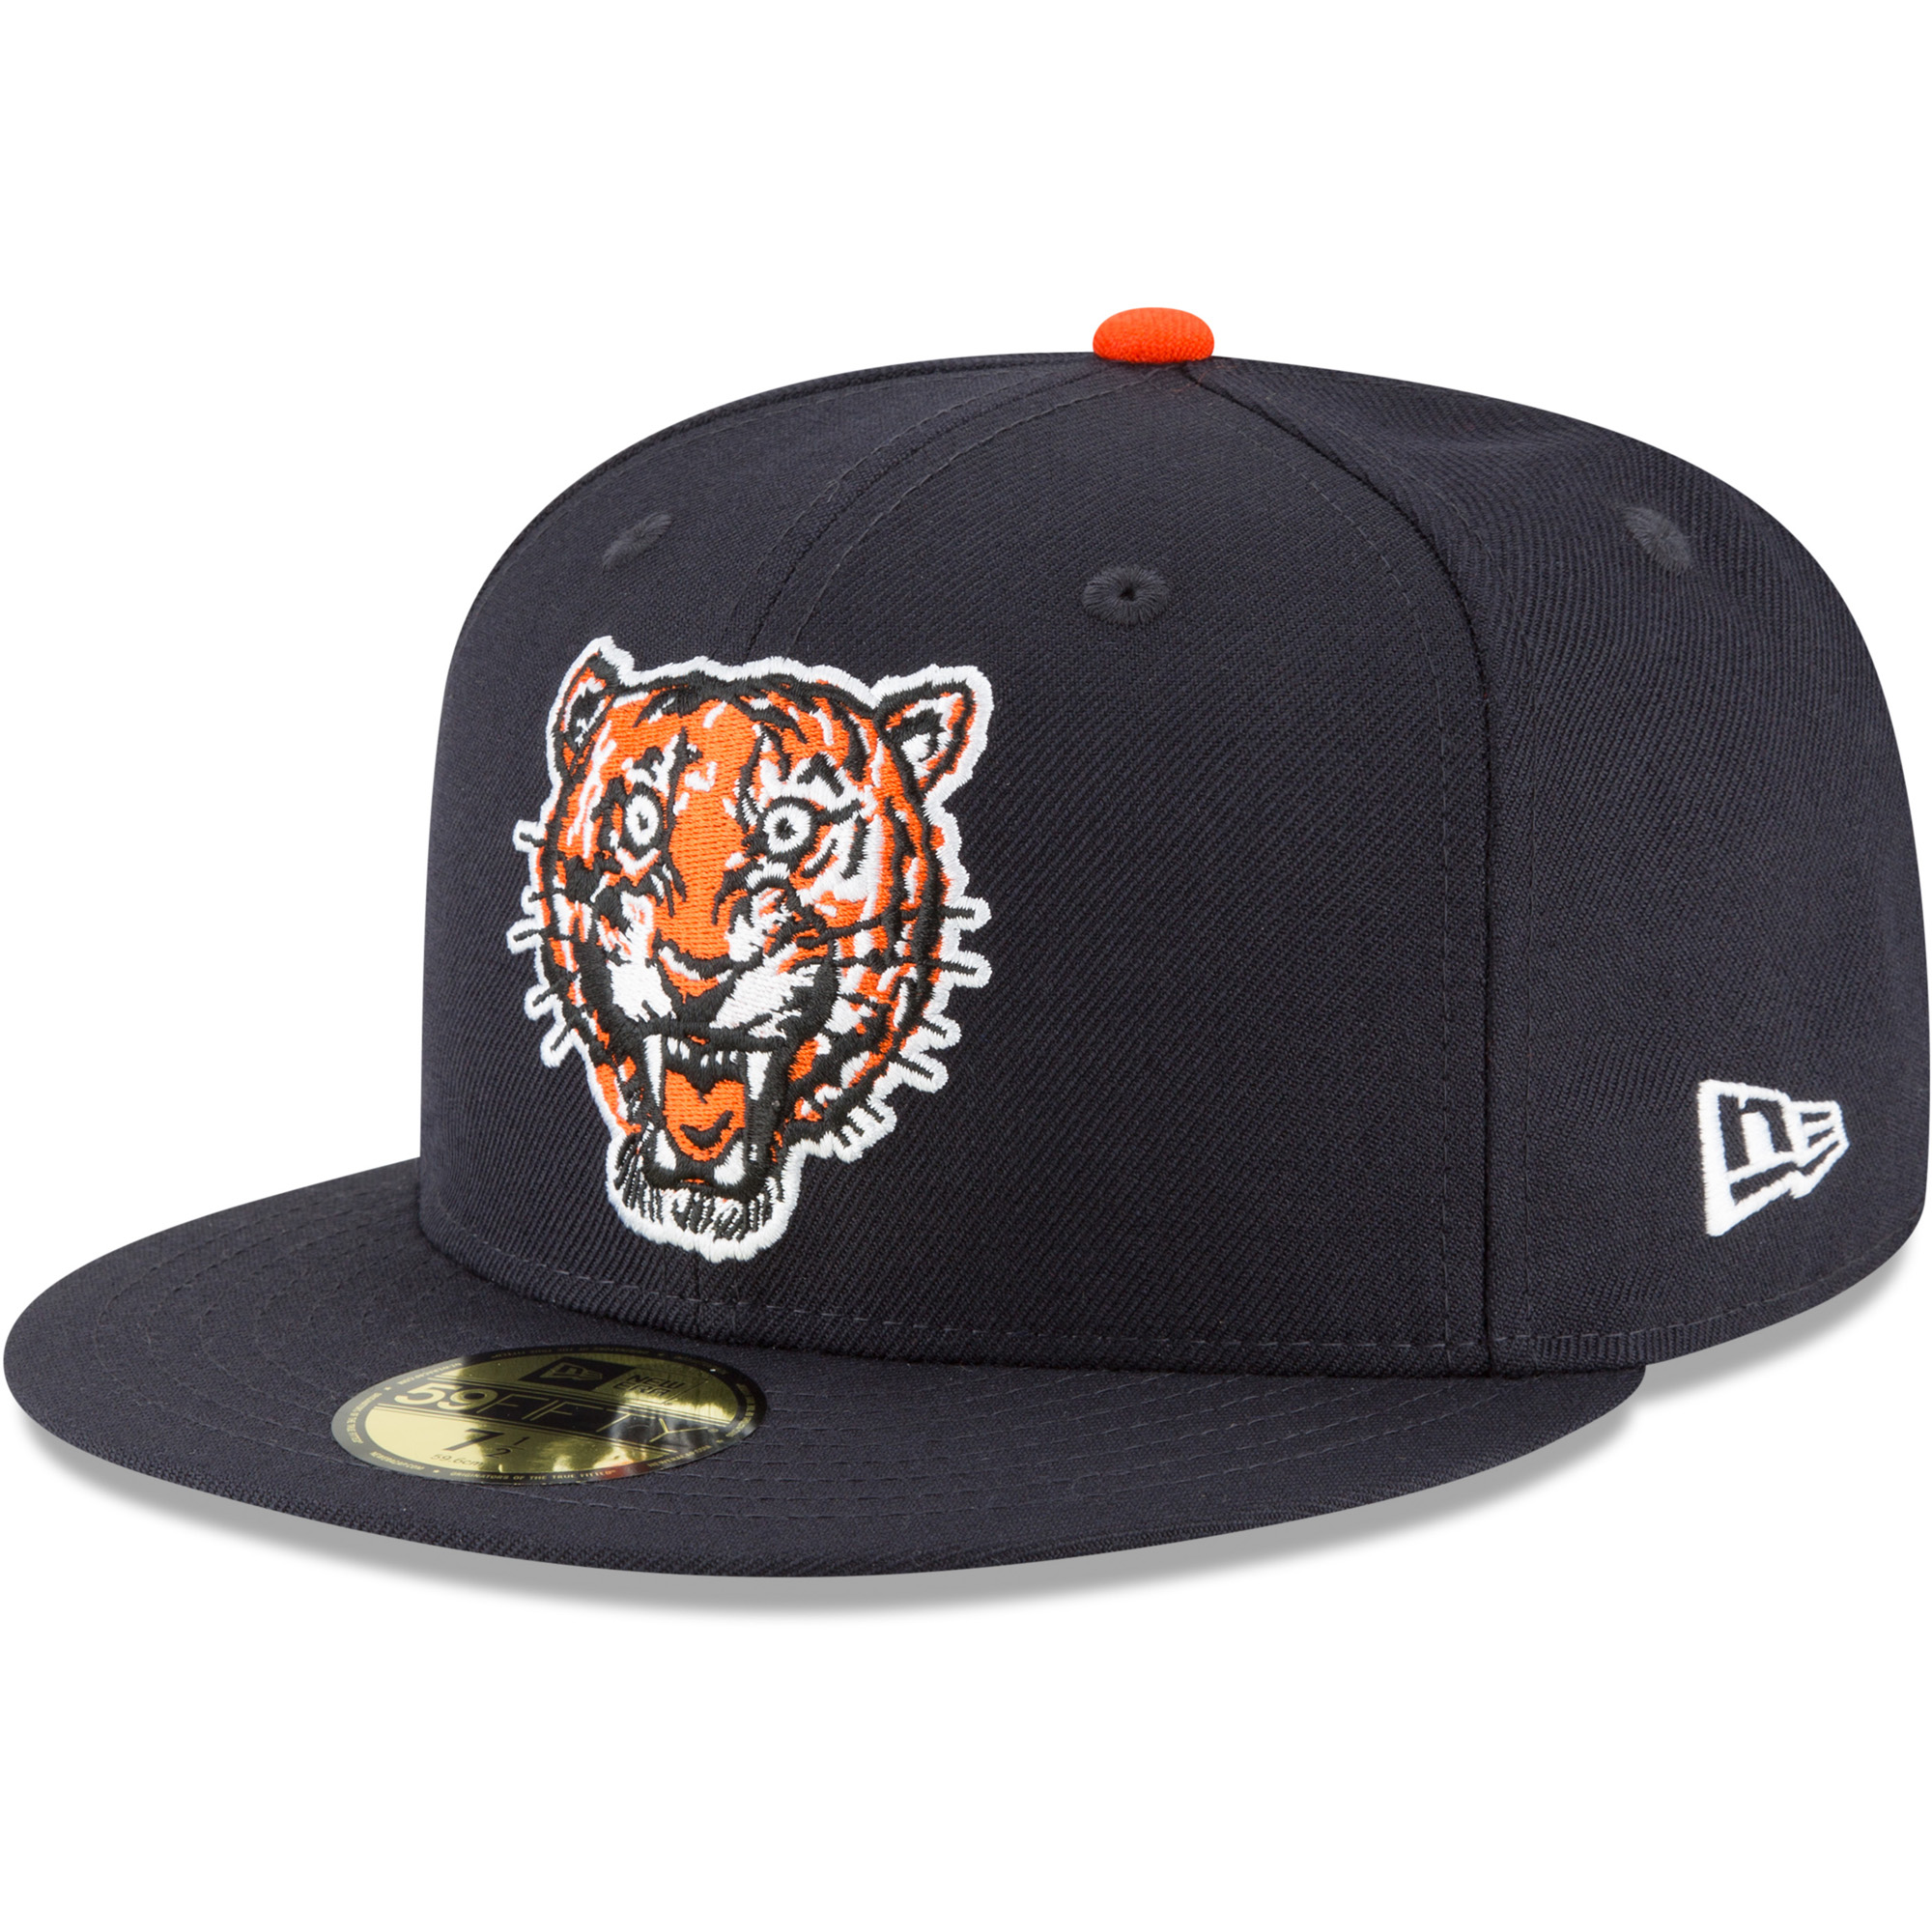 Detroit Tigers New Era Cooperstown Collection Wool 59FIFTY Fitted Hat - Navy